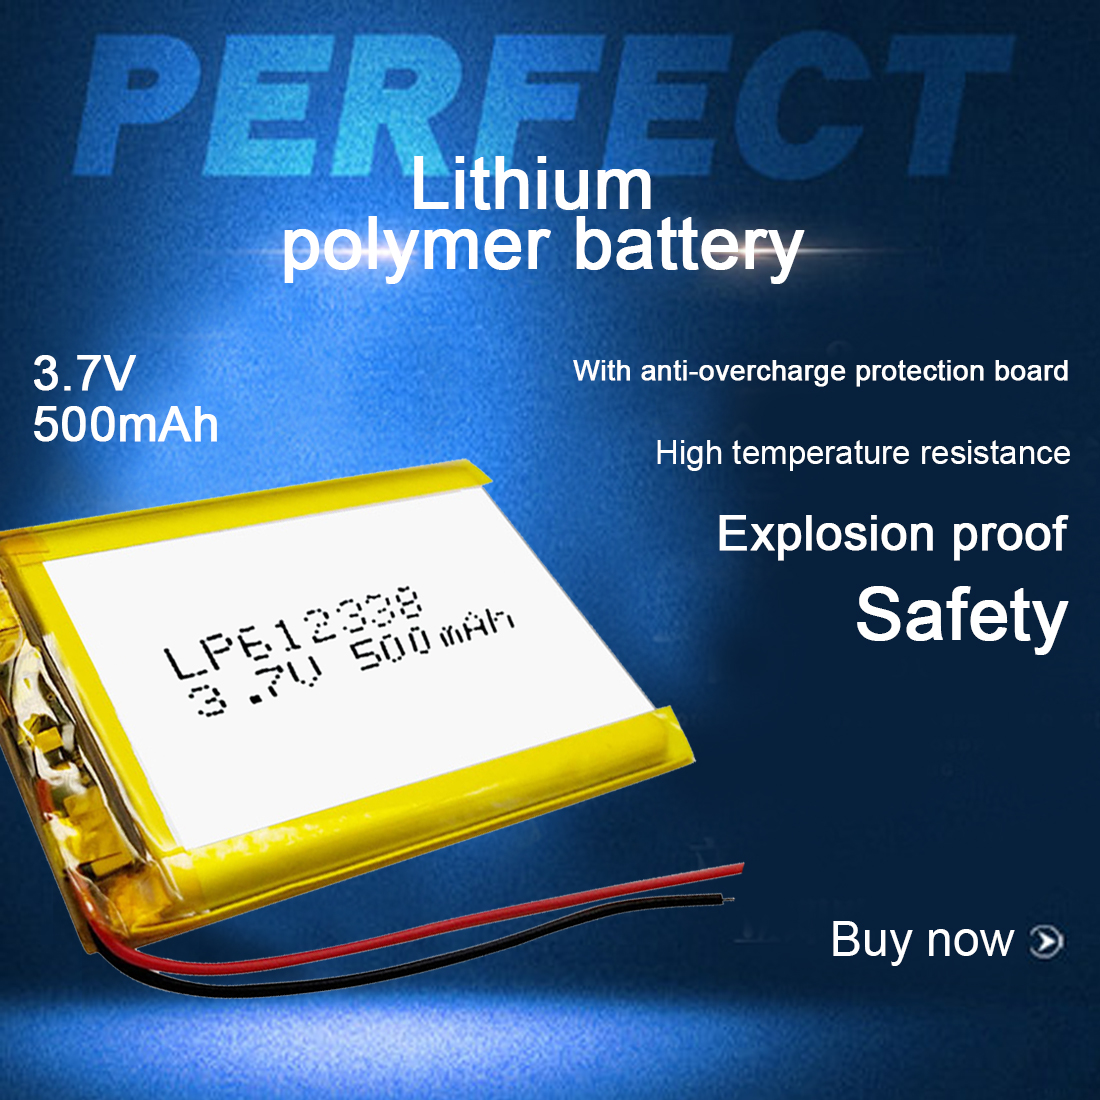 <font><b>612338</b></font> Lithium Polymer Rechargeable Battery 500mAh 3.7V Li-ion Battery for Recorder DVR GPS MP3 Cell Phone Speaker image